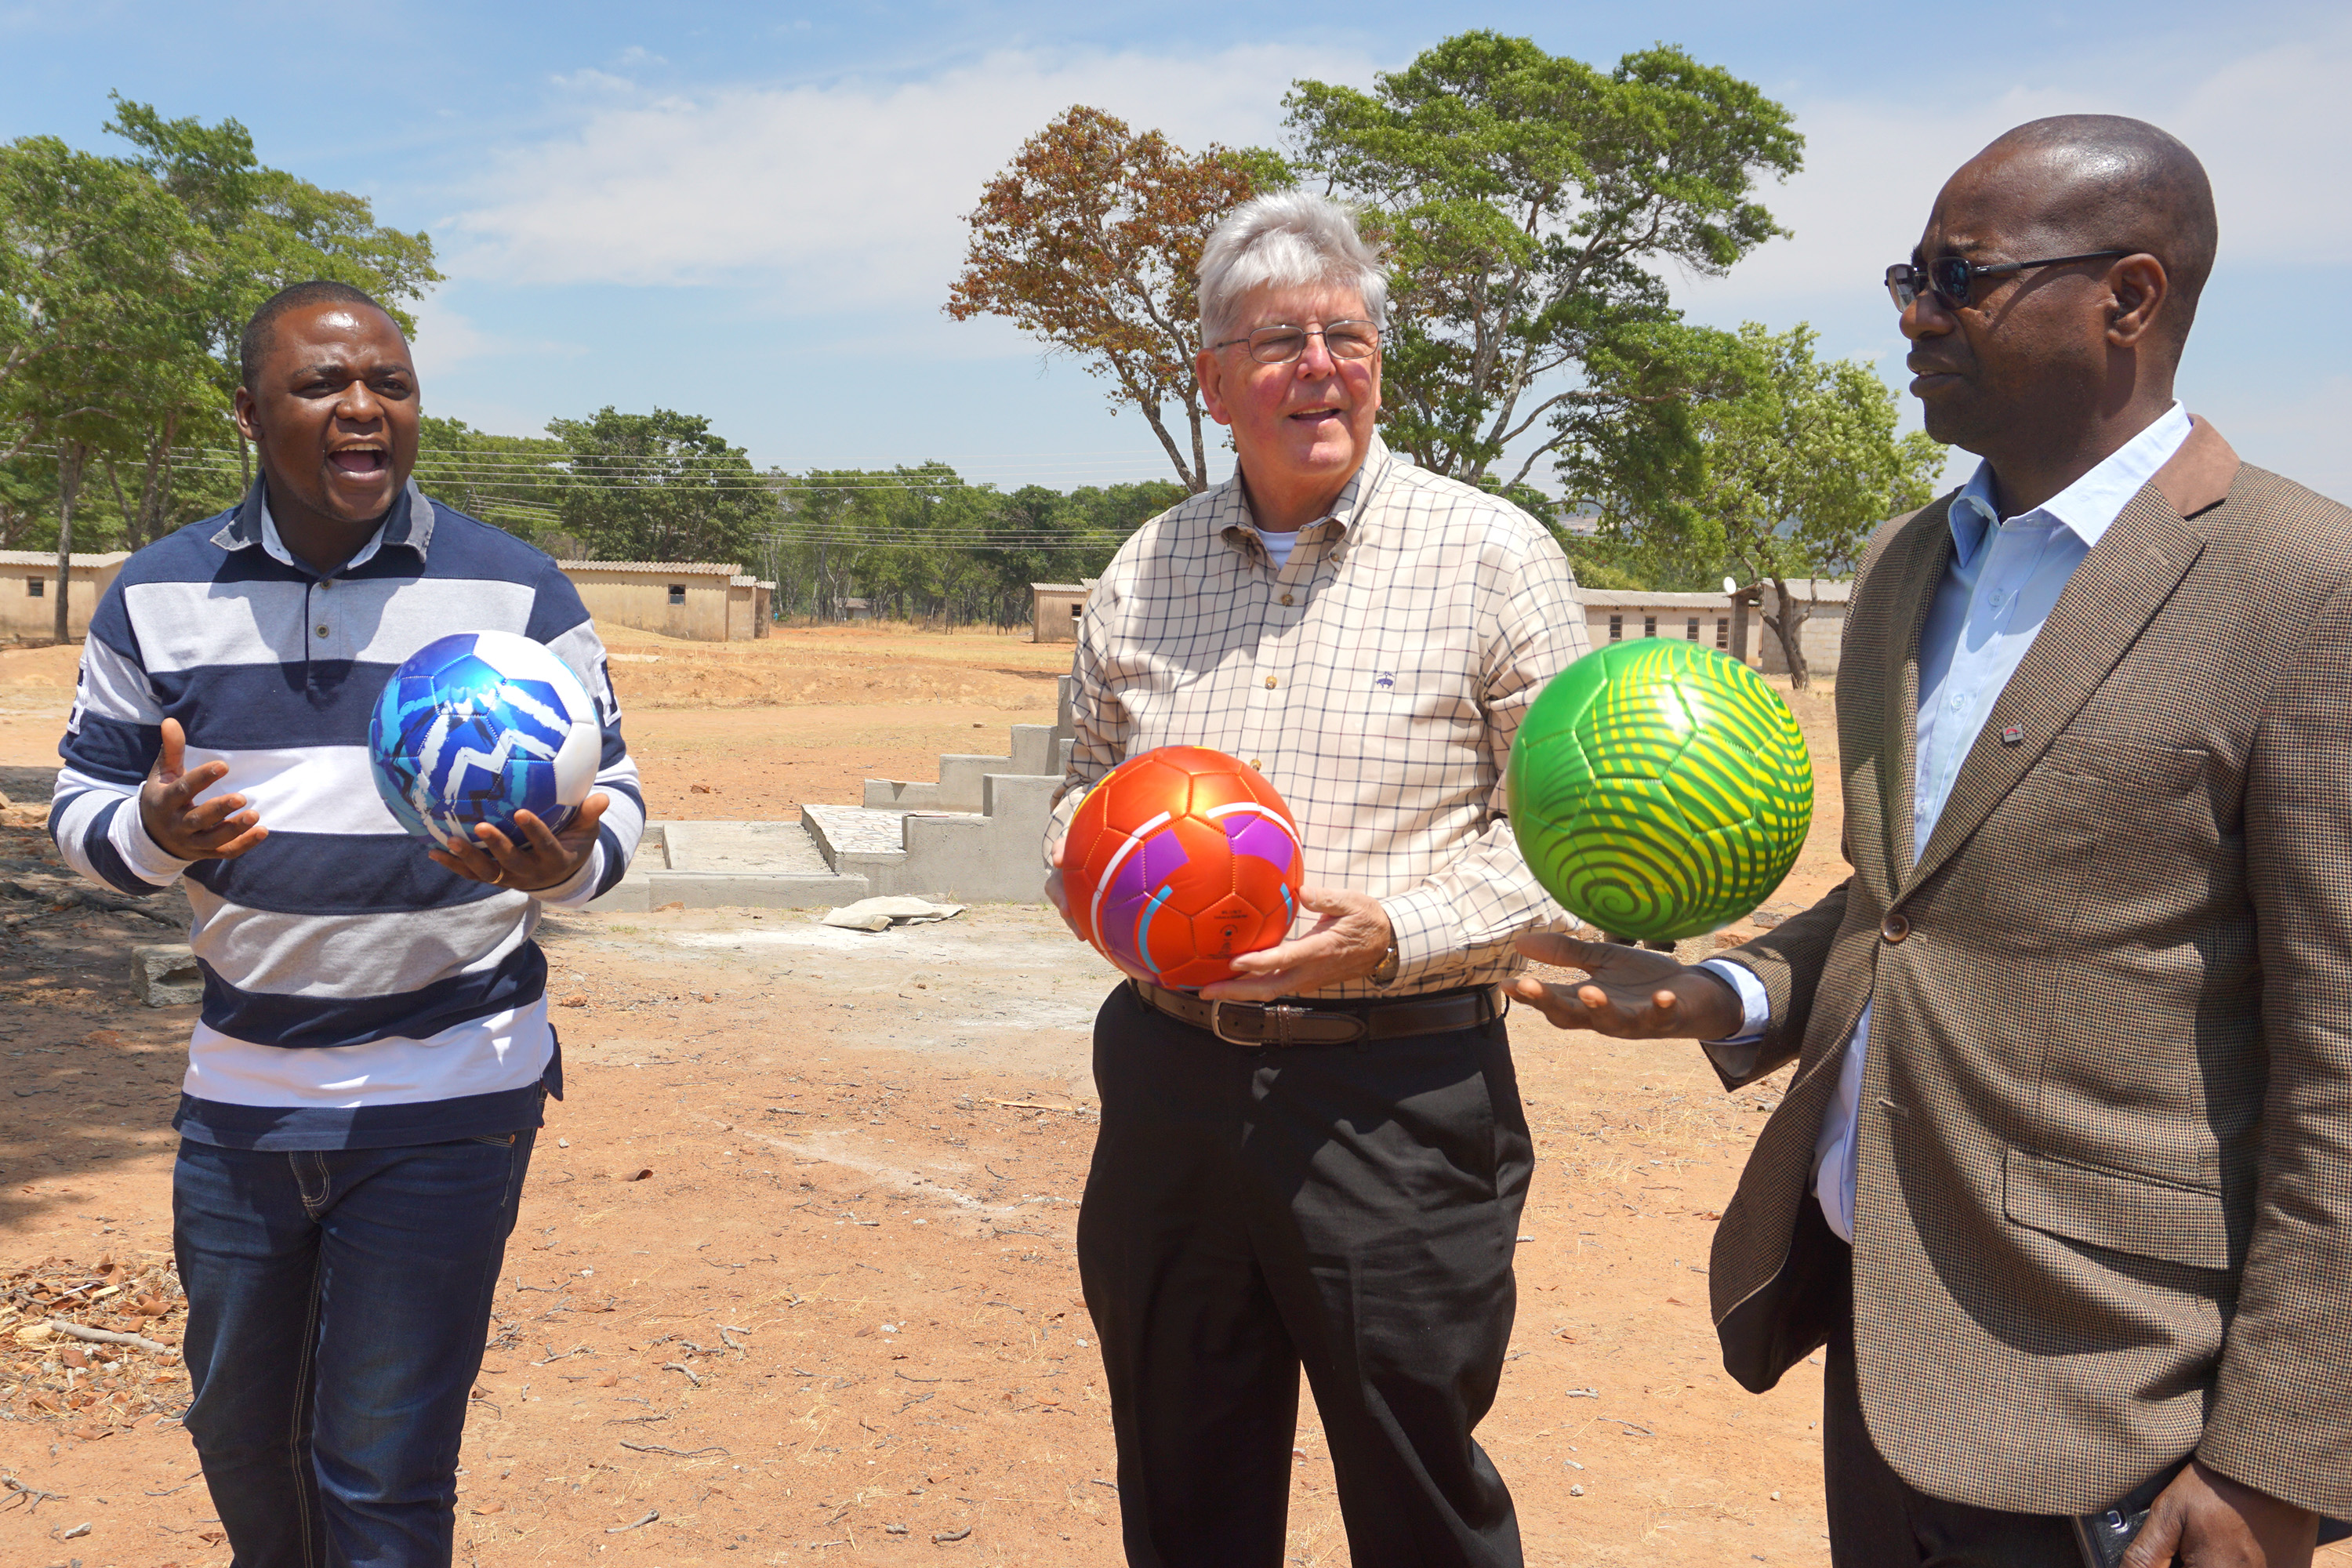 The Rev. Future Sibanda, left, Charlie Moore and the Rev. Henry Luckson Chareka hold soccer balls donated to students at Hanwa Mission School in the Murewa District of Zimbawe as part of a partnership between Community United Methodist Church in Crofton, Maryland, and United Methodists in the Zimbabwe West Conference. Photo by Chenayi Kumuterera, UMNS.